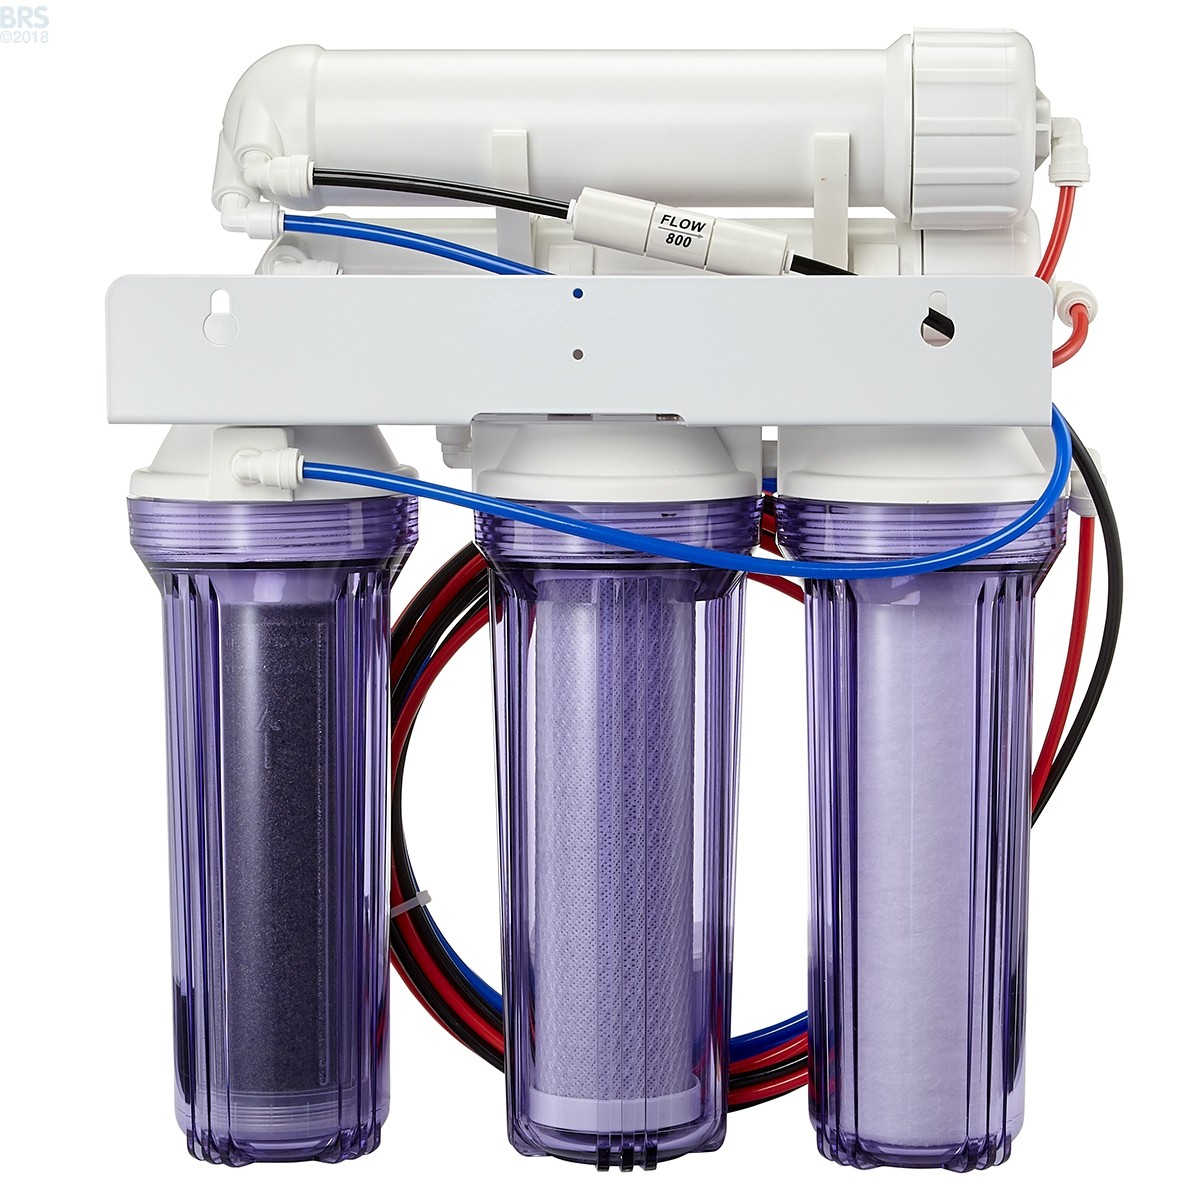 Black Friday Deals 4 Stage Value Ro Di System Bulk Reef Supply Nano Cartridge Filter Air Water 10 03 U Mikron Rodi